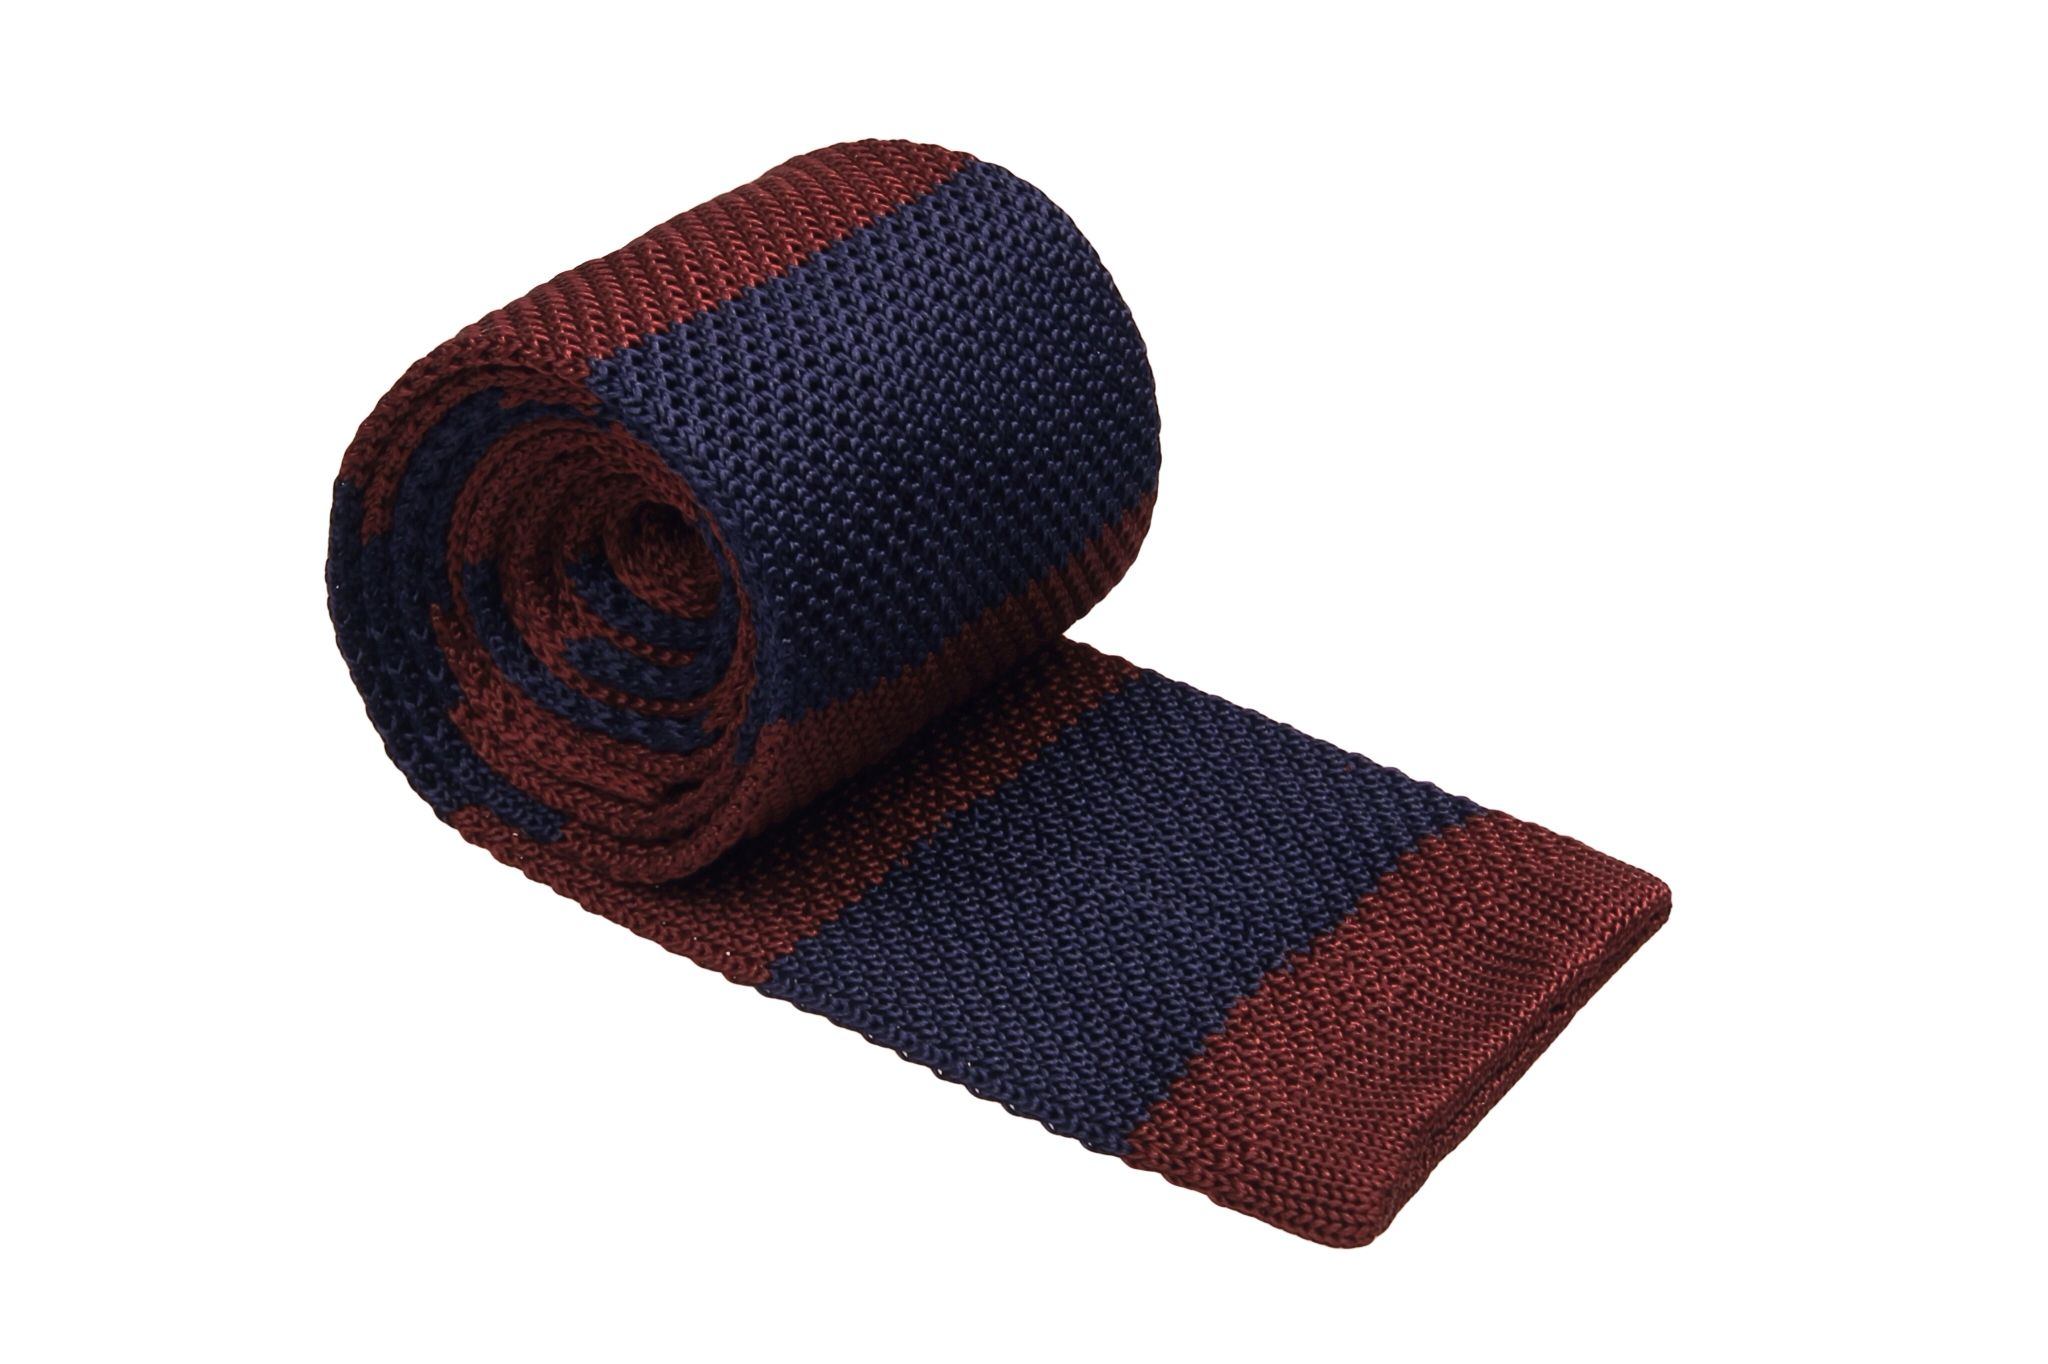 Slim necktie - Alternately navy and burgundy moss knitted silk - Notch FALCO Notch p2bmaY